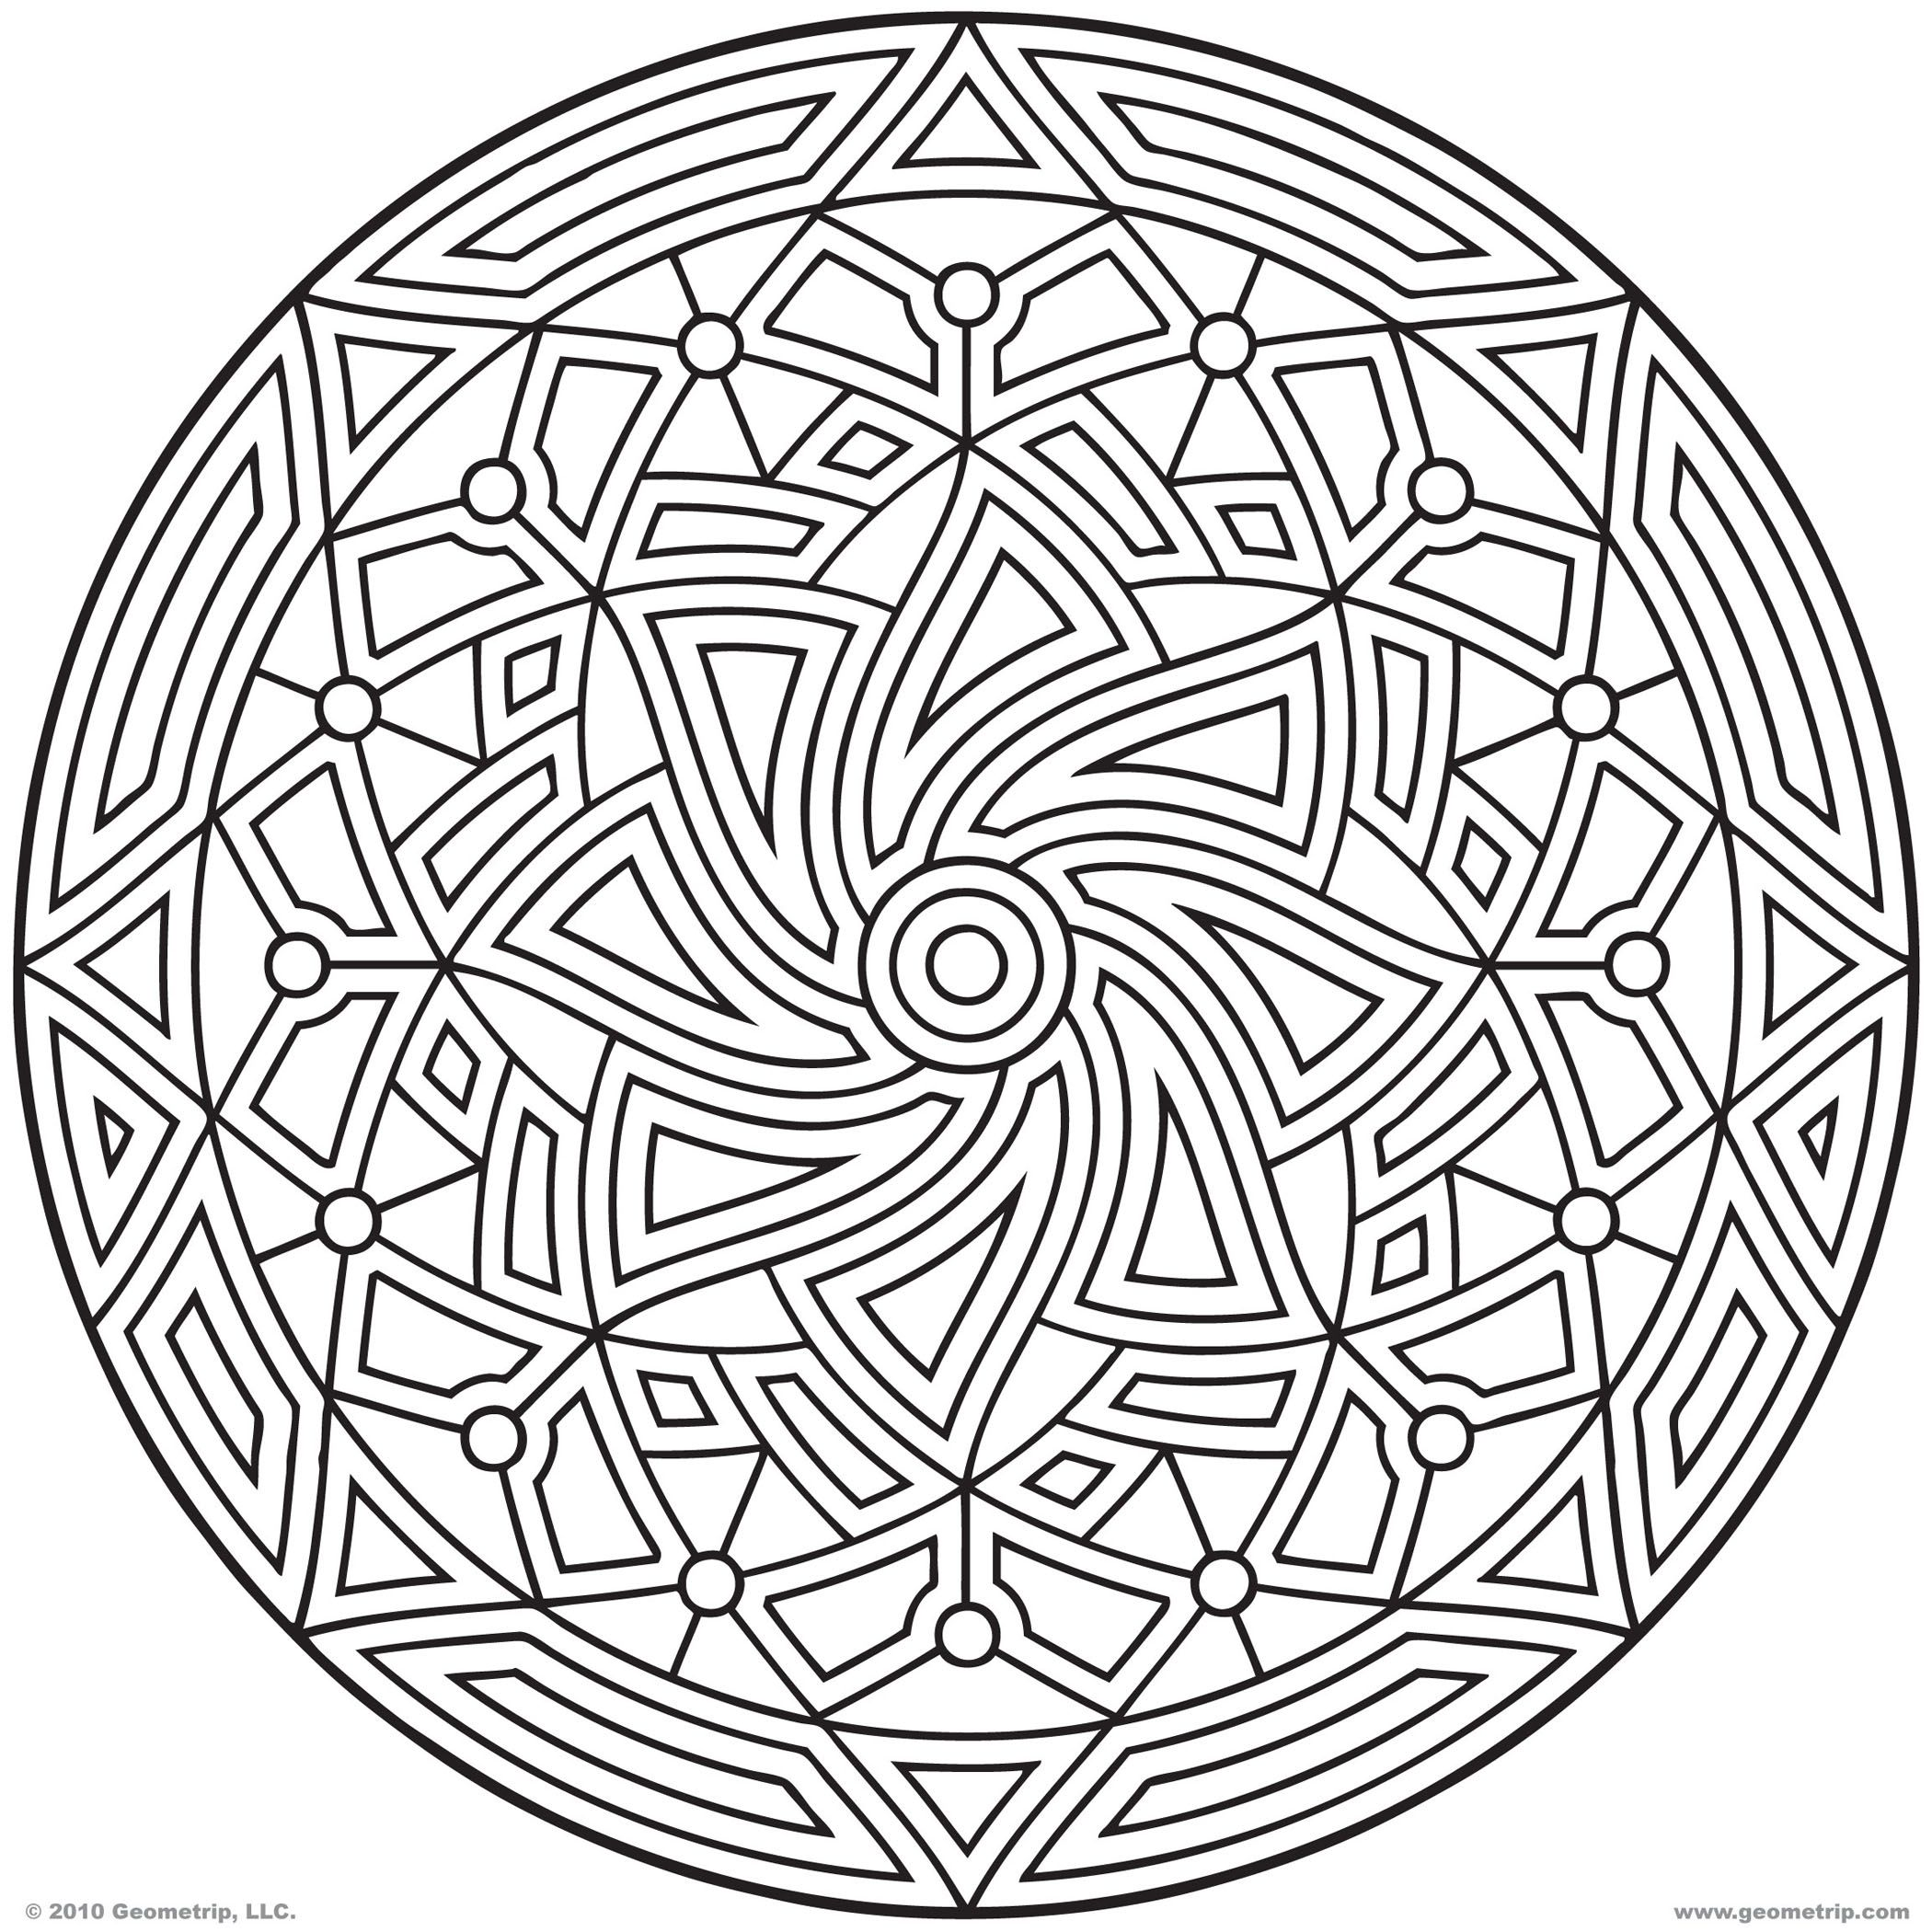 Images of printable hard geometric coloring pages geometrip com free geometric coloring designs